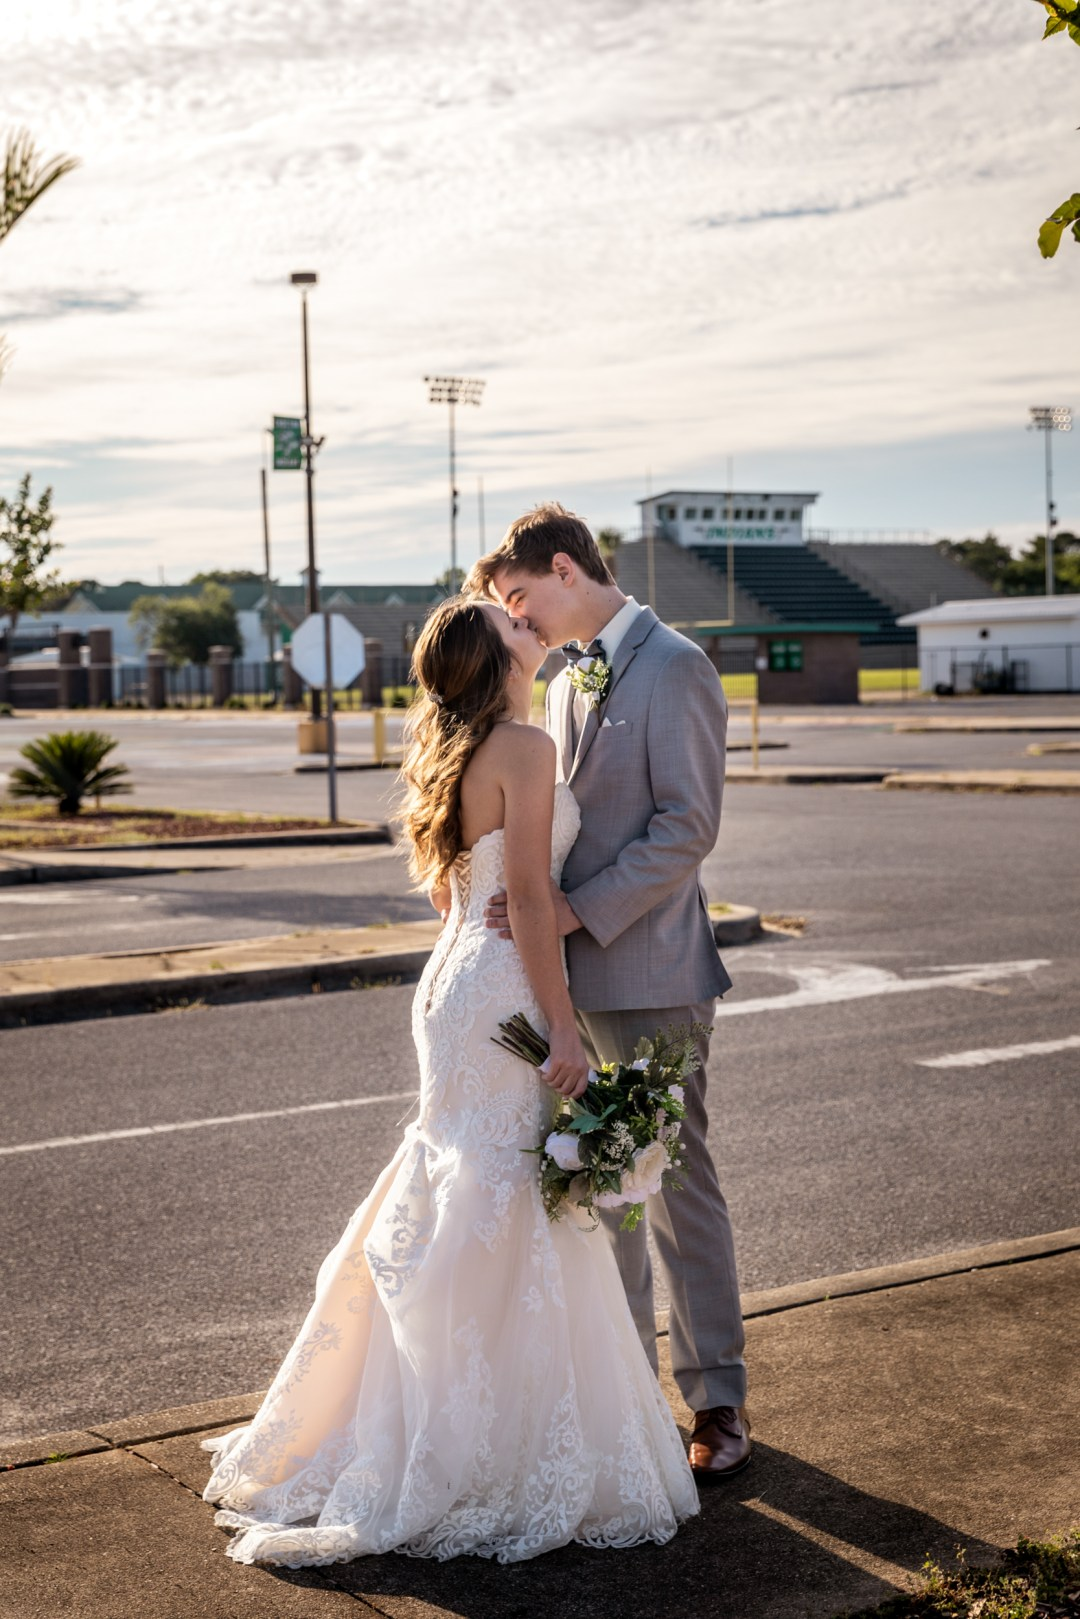 bride and groom kiss in front of high school football field